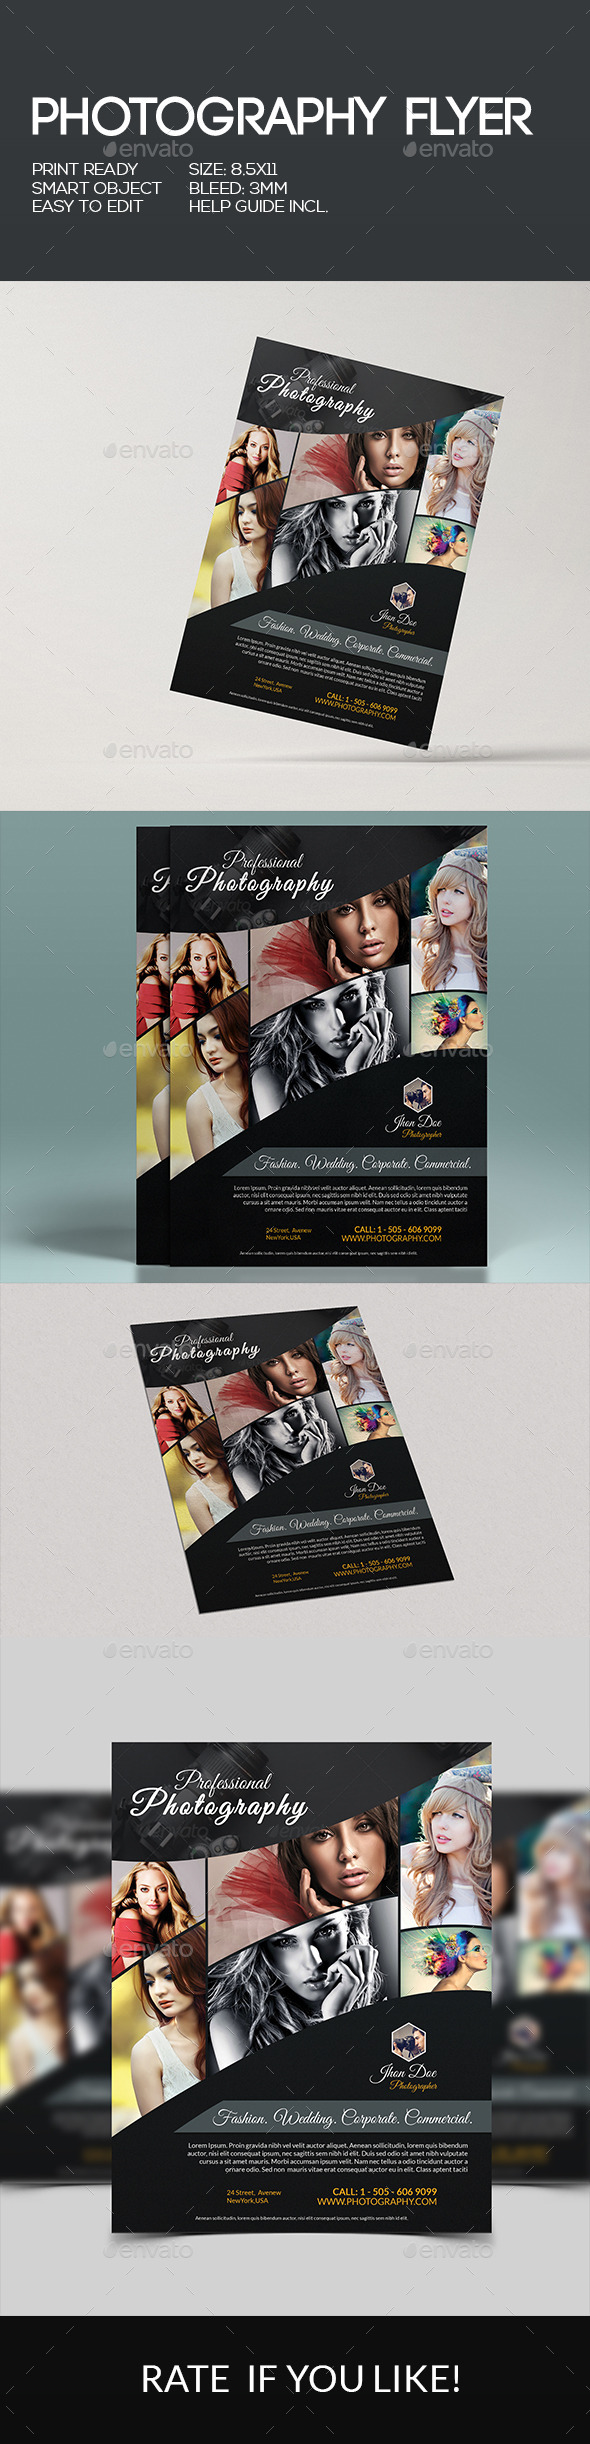 GraphicRiver Photography Flyer 10190097